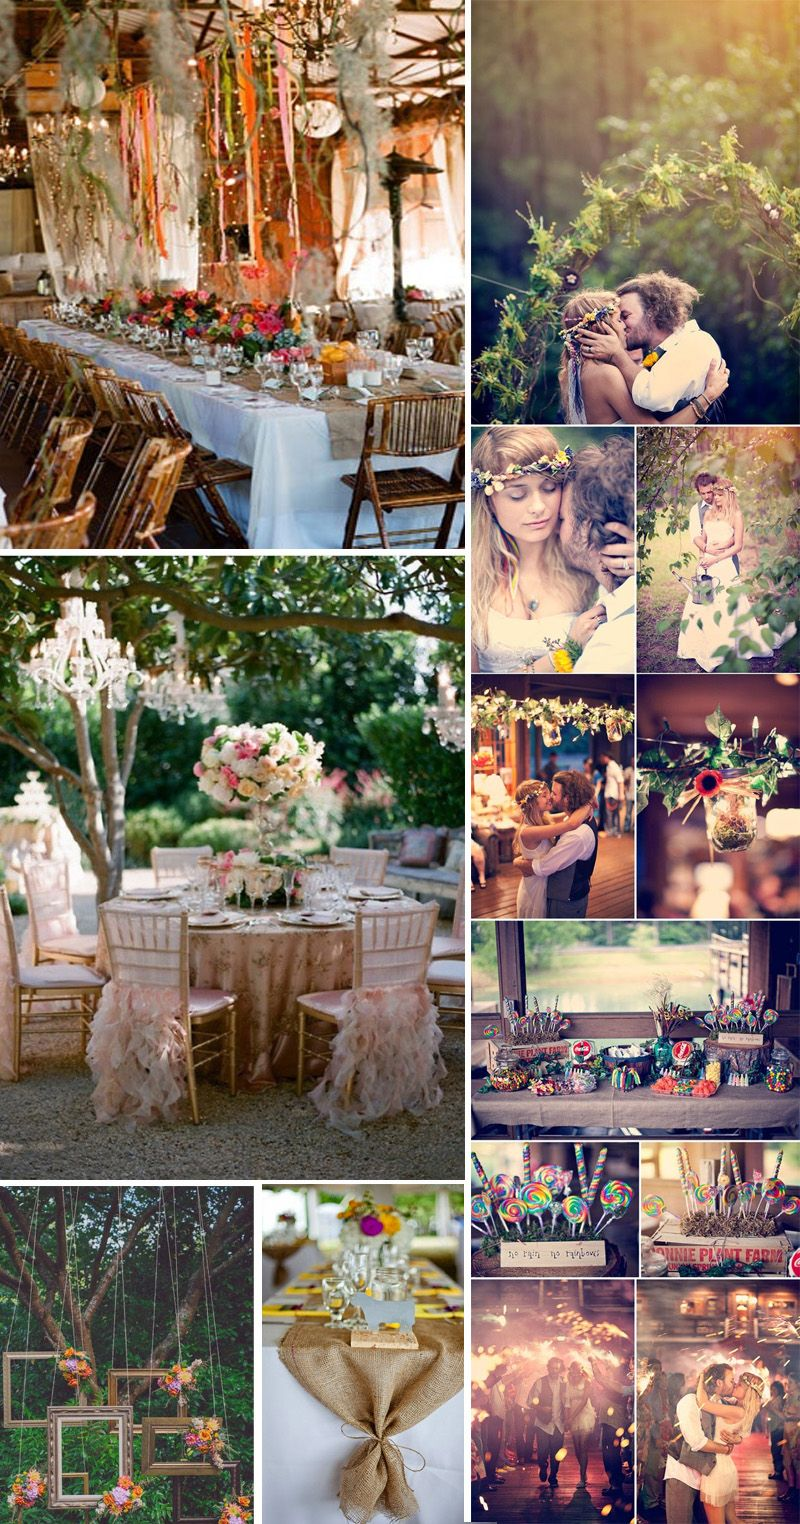 Go boho bohemian wedding decor ideas inspiration yes baby bohemian wedding decor ideas inspiration yes baby daily junglespirit Image collections